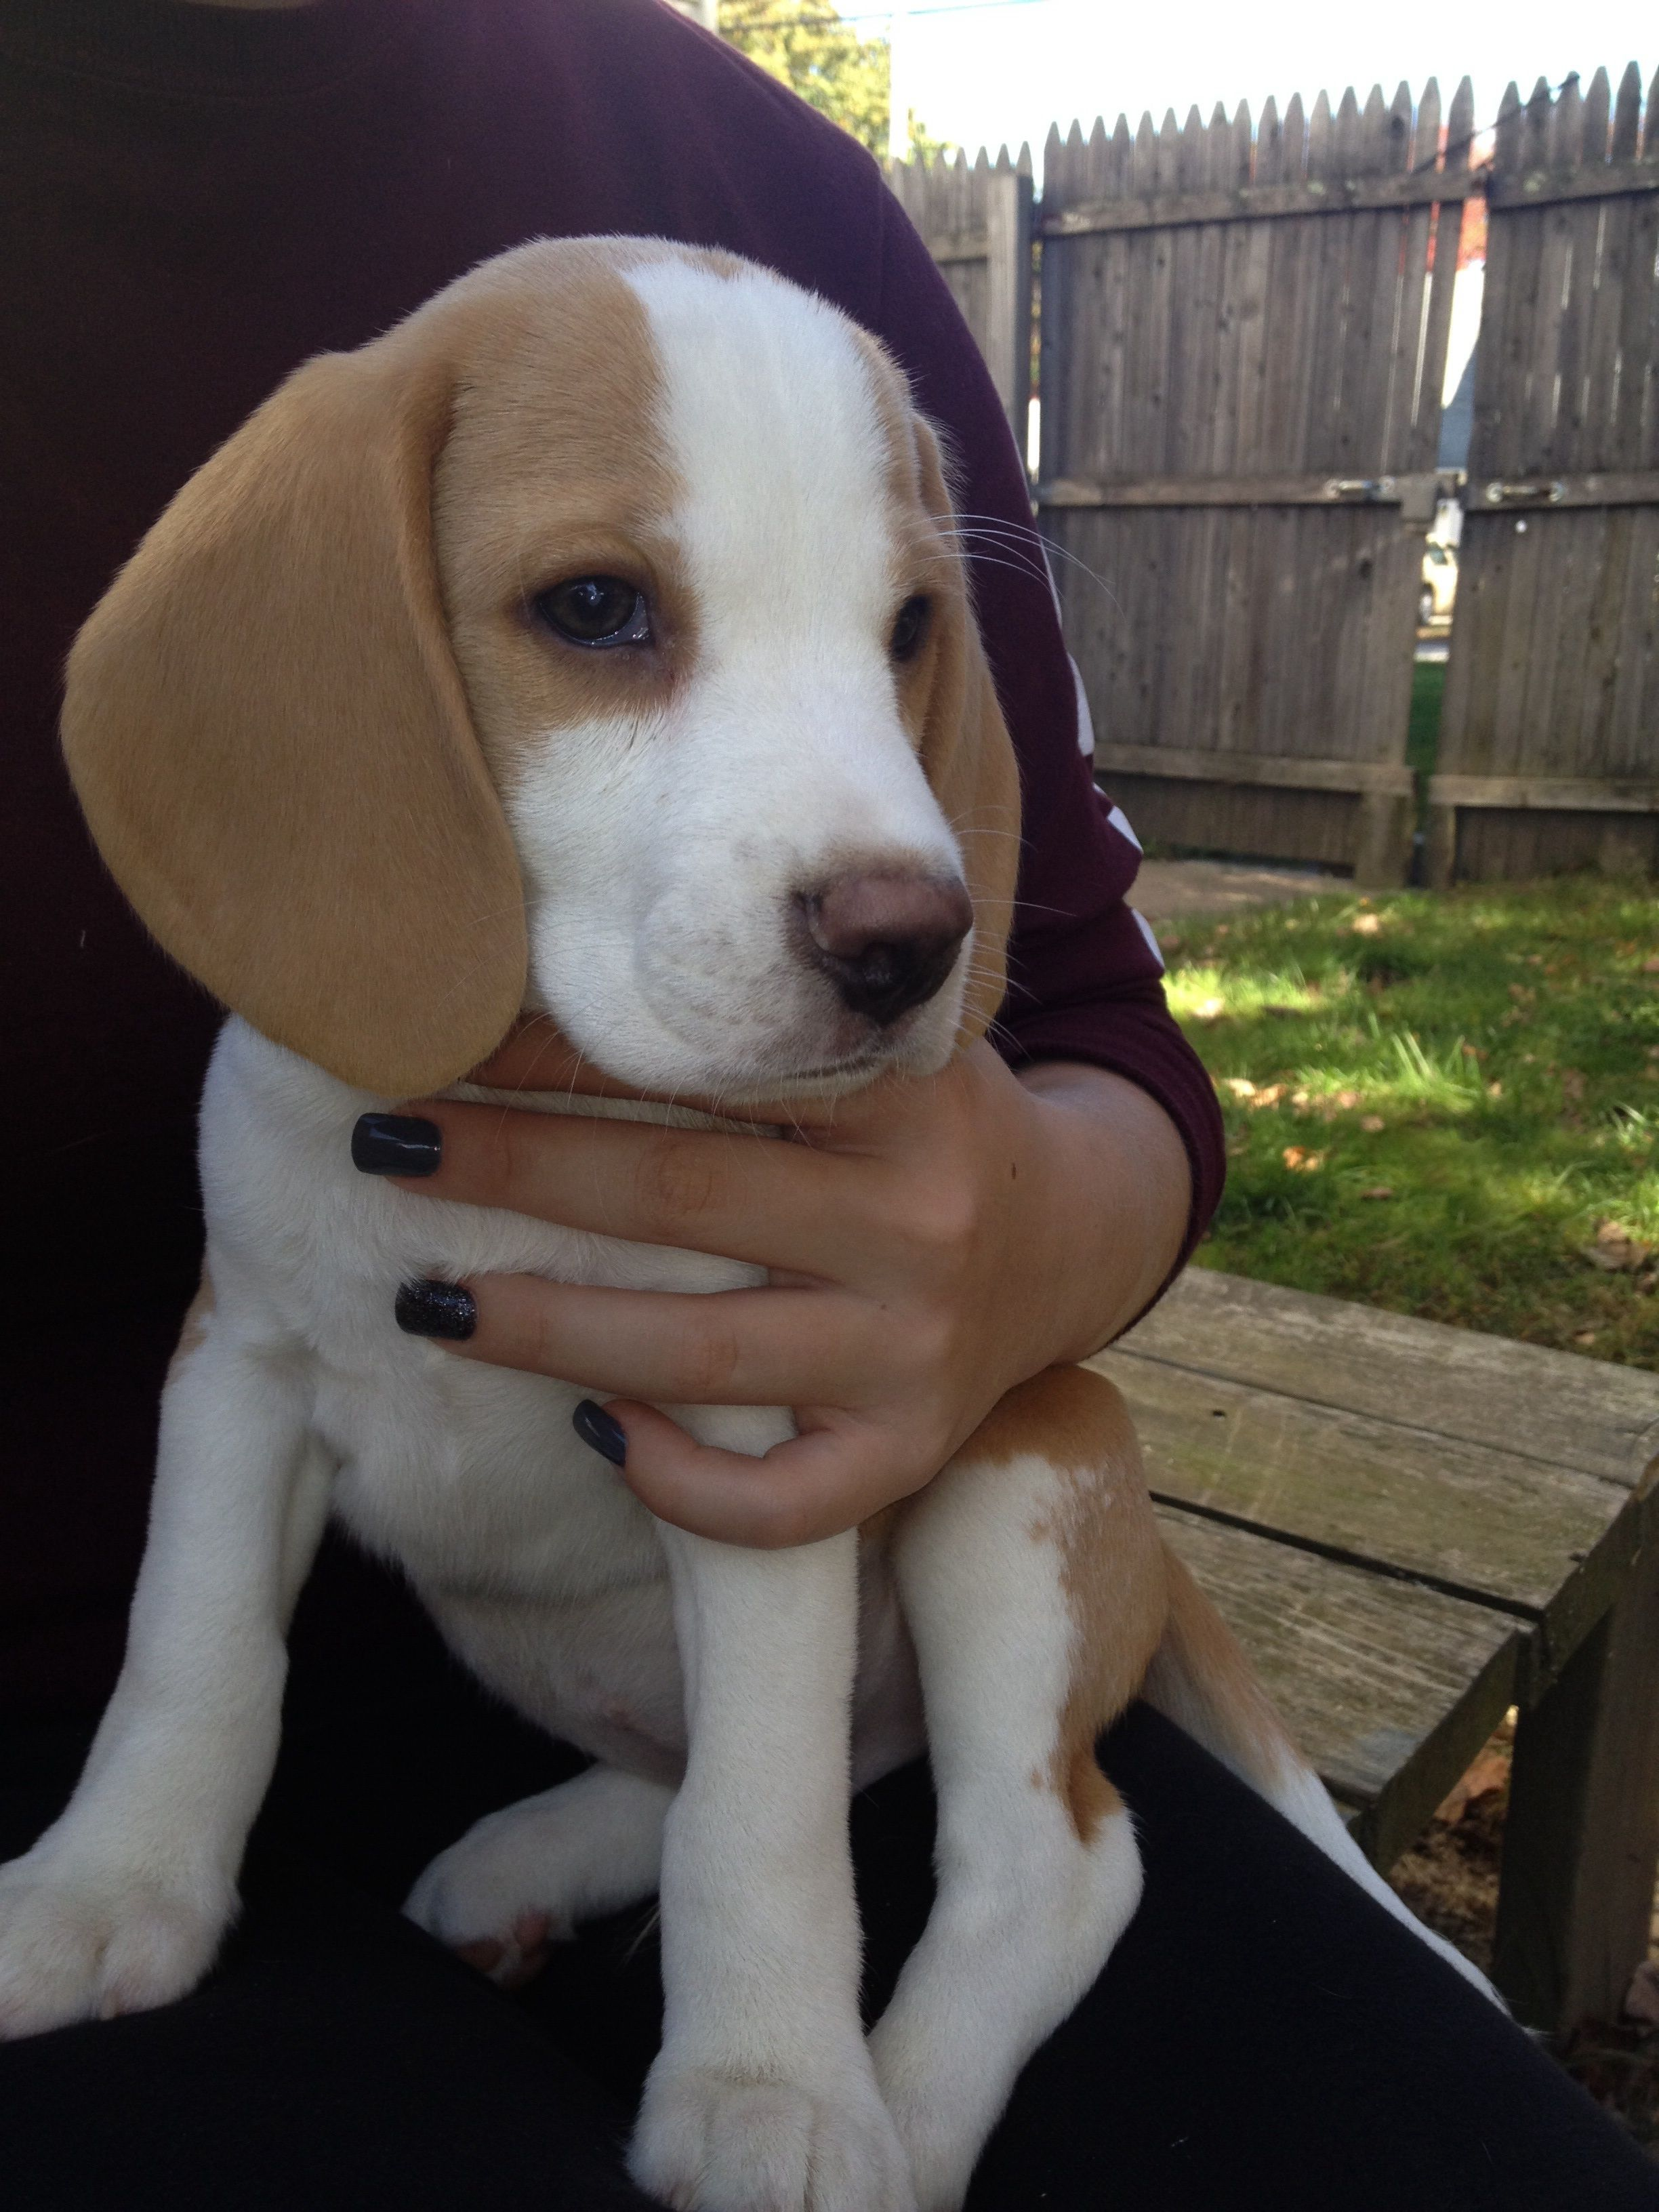 Love Those Ears Beagle Puppy Dogs Beagle Puppy Dog Breeds